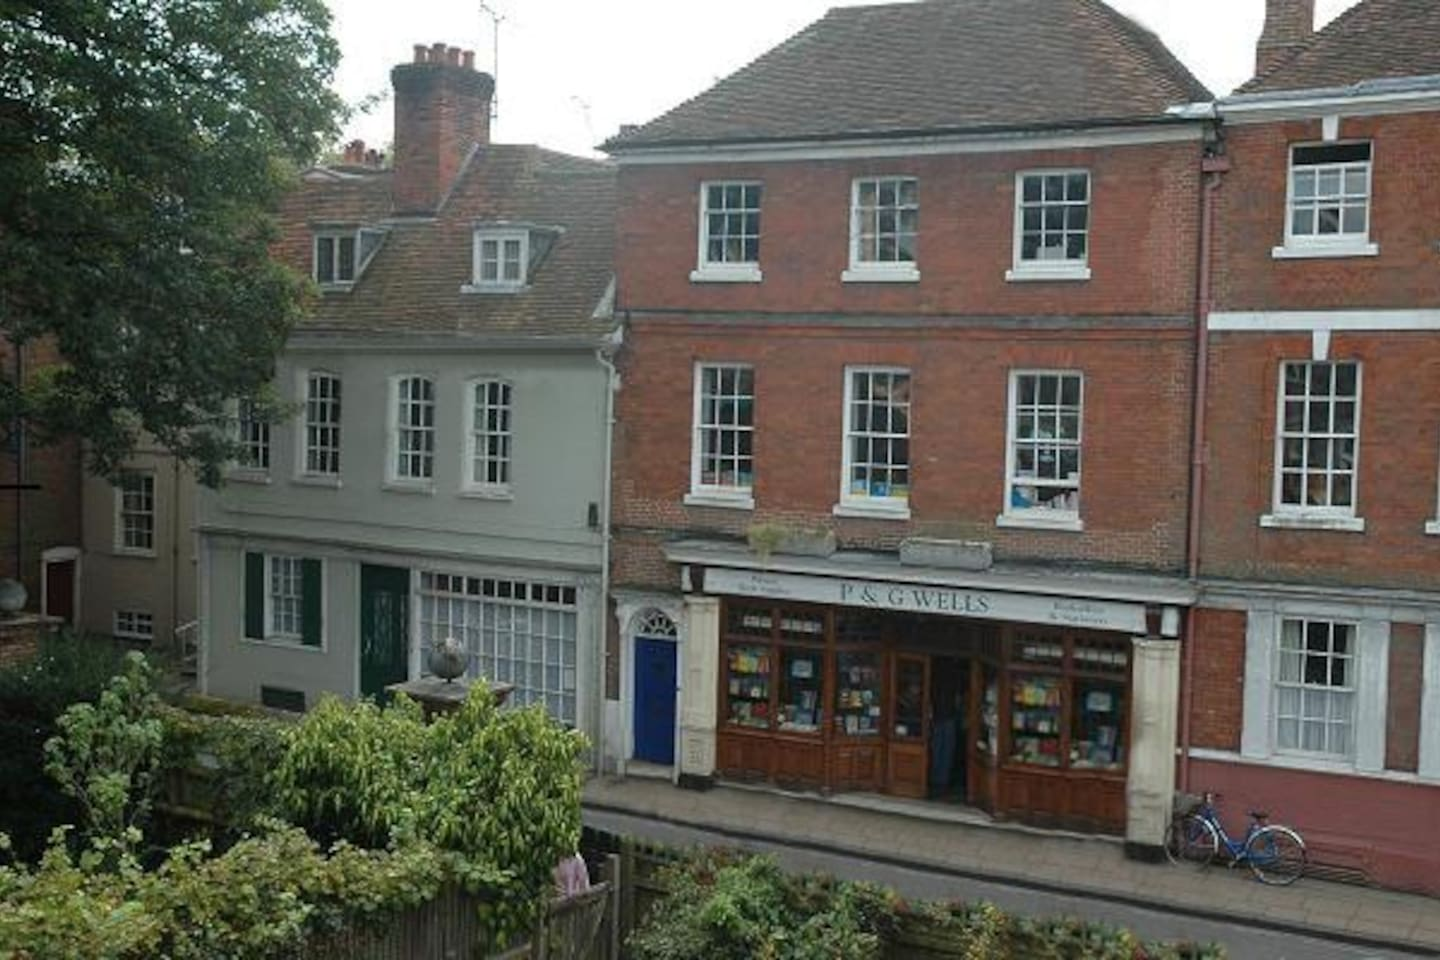 The flat is on the top floor above a bookshop in a quiet street